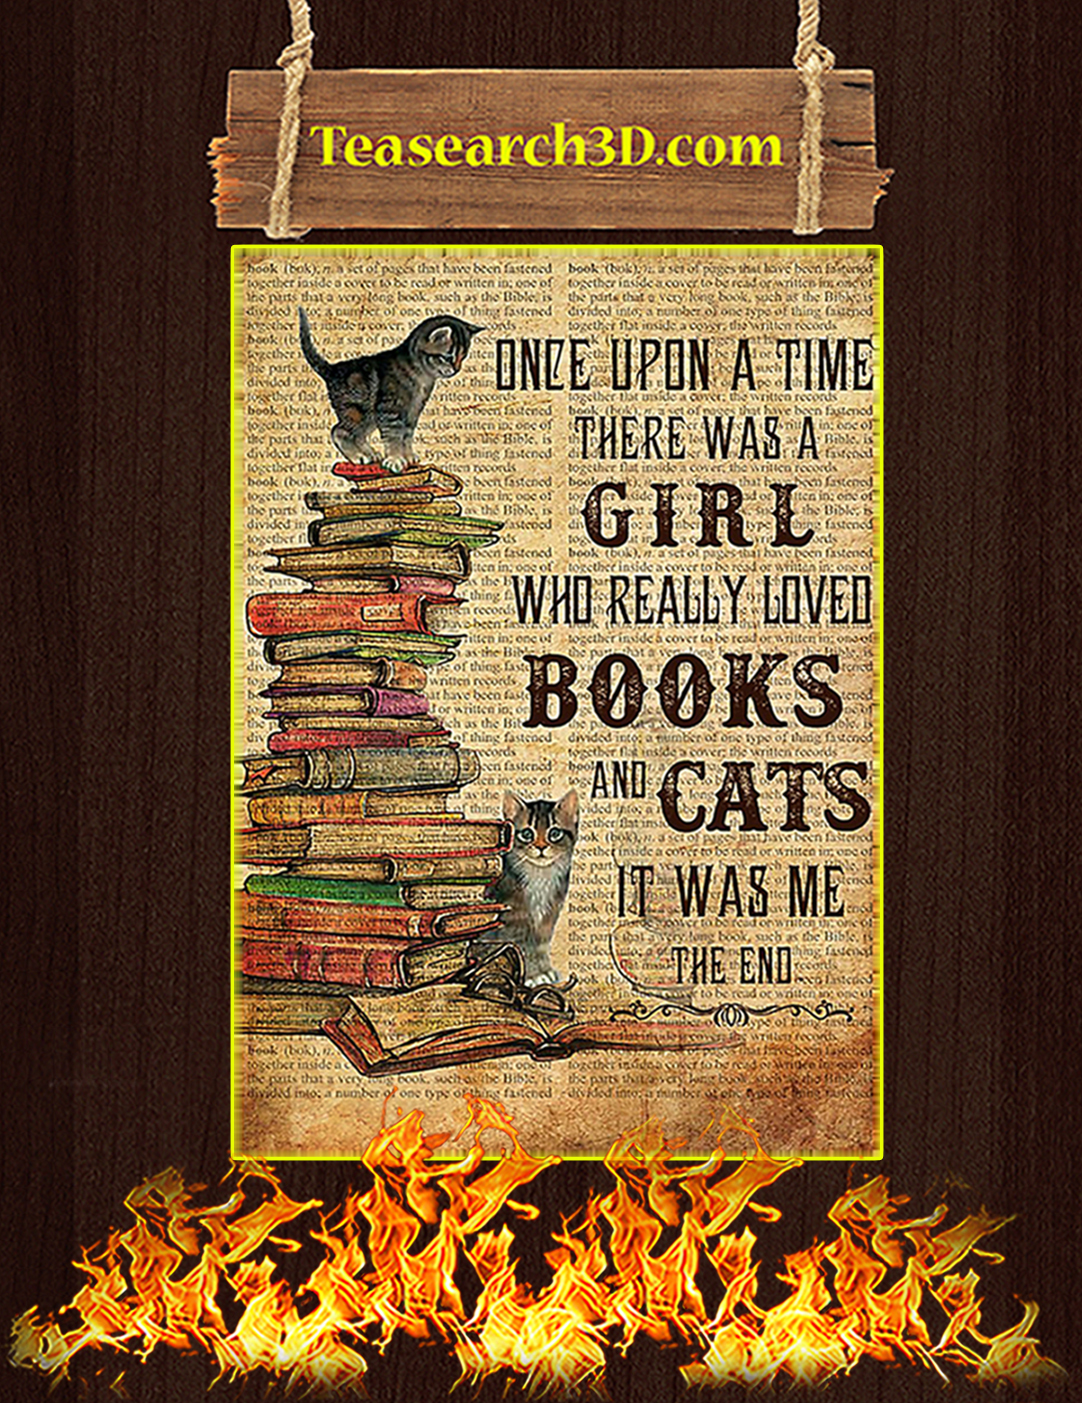 One upon a time there was a girl who really loved books and cats Poster A2